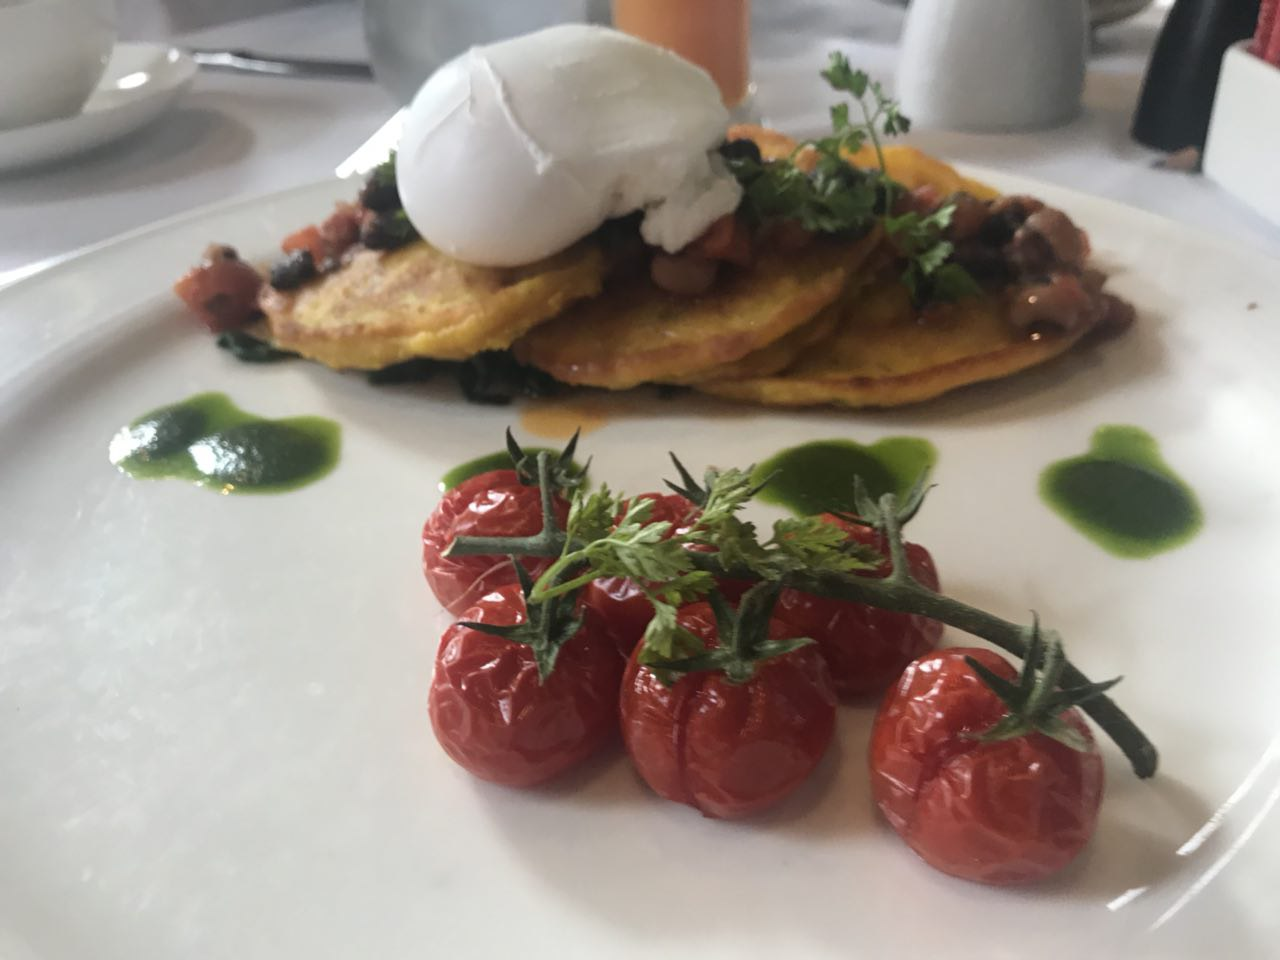 Eleanor's sweetcorn and zucchini hotcakes, with roasted tomatoes, spinach, red pepper and black bean salsa and a poached egg